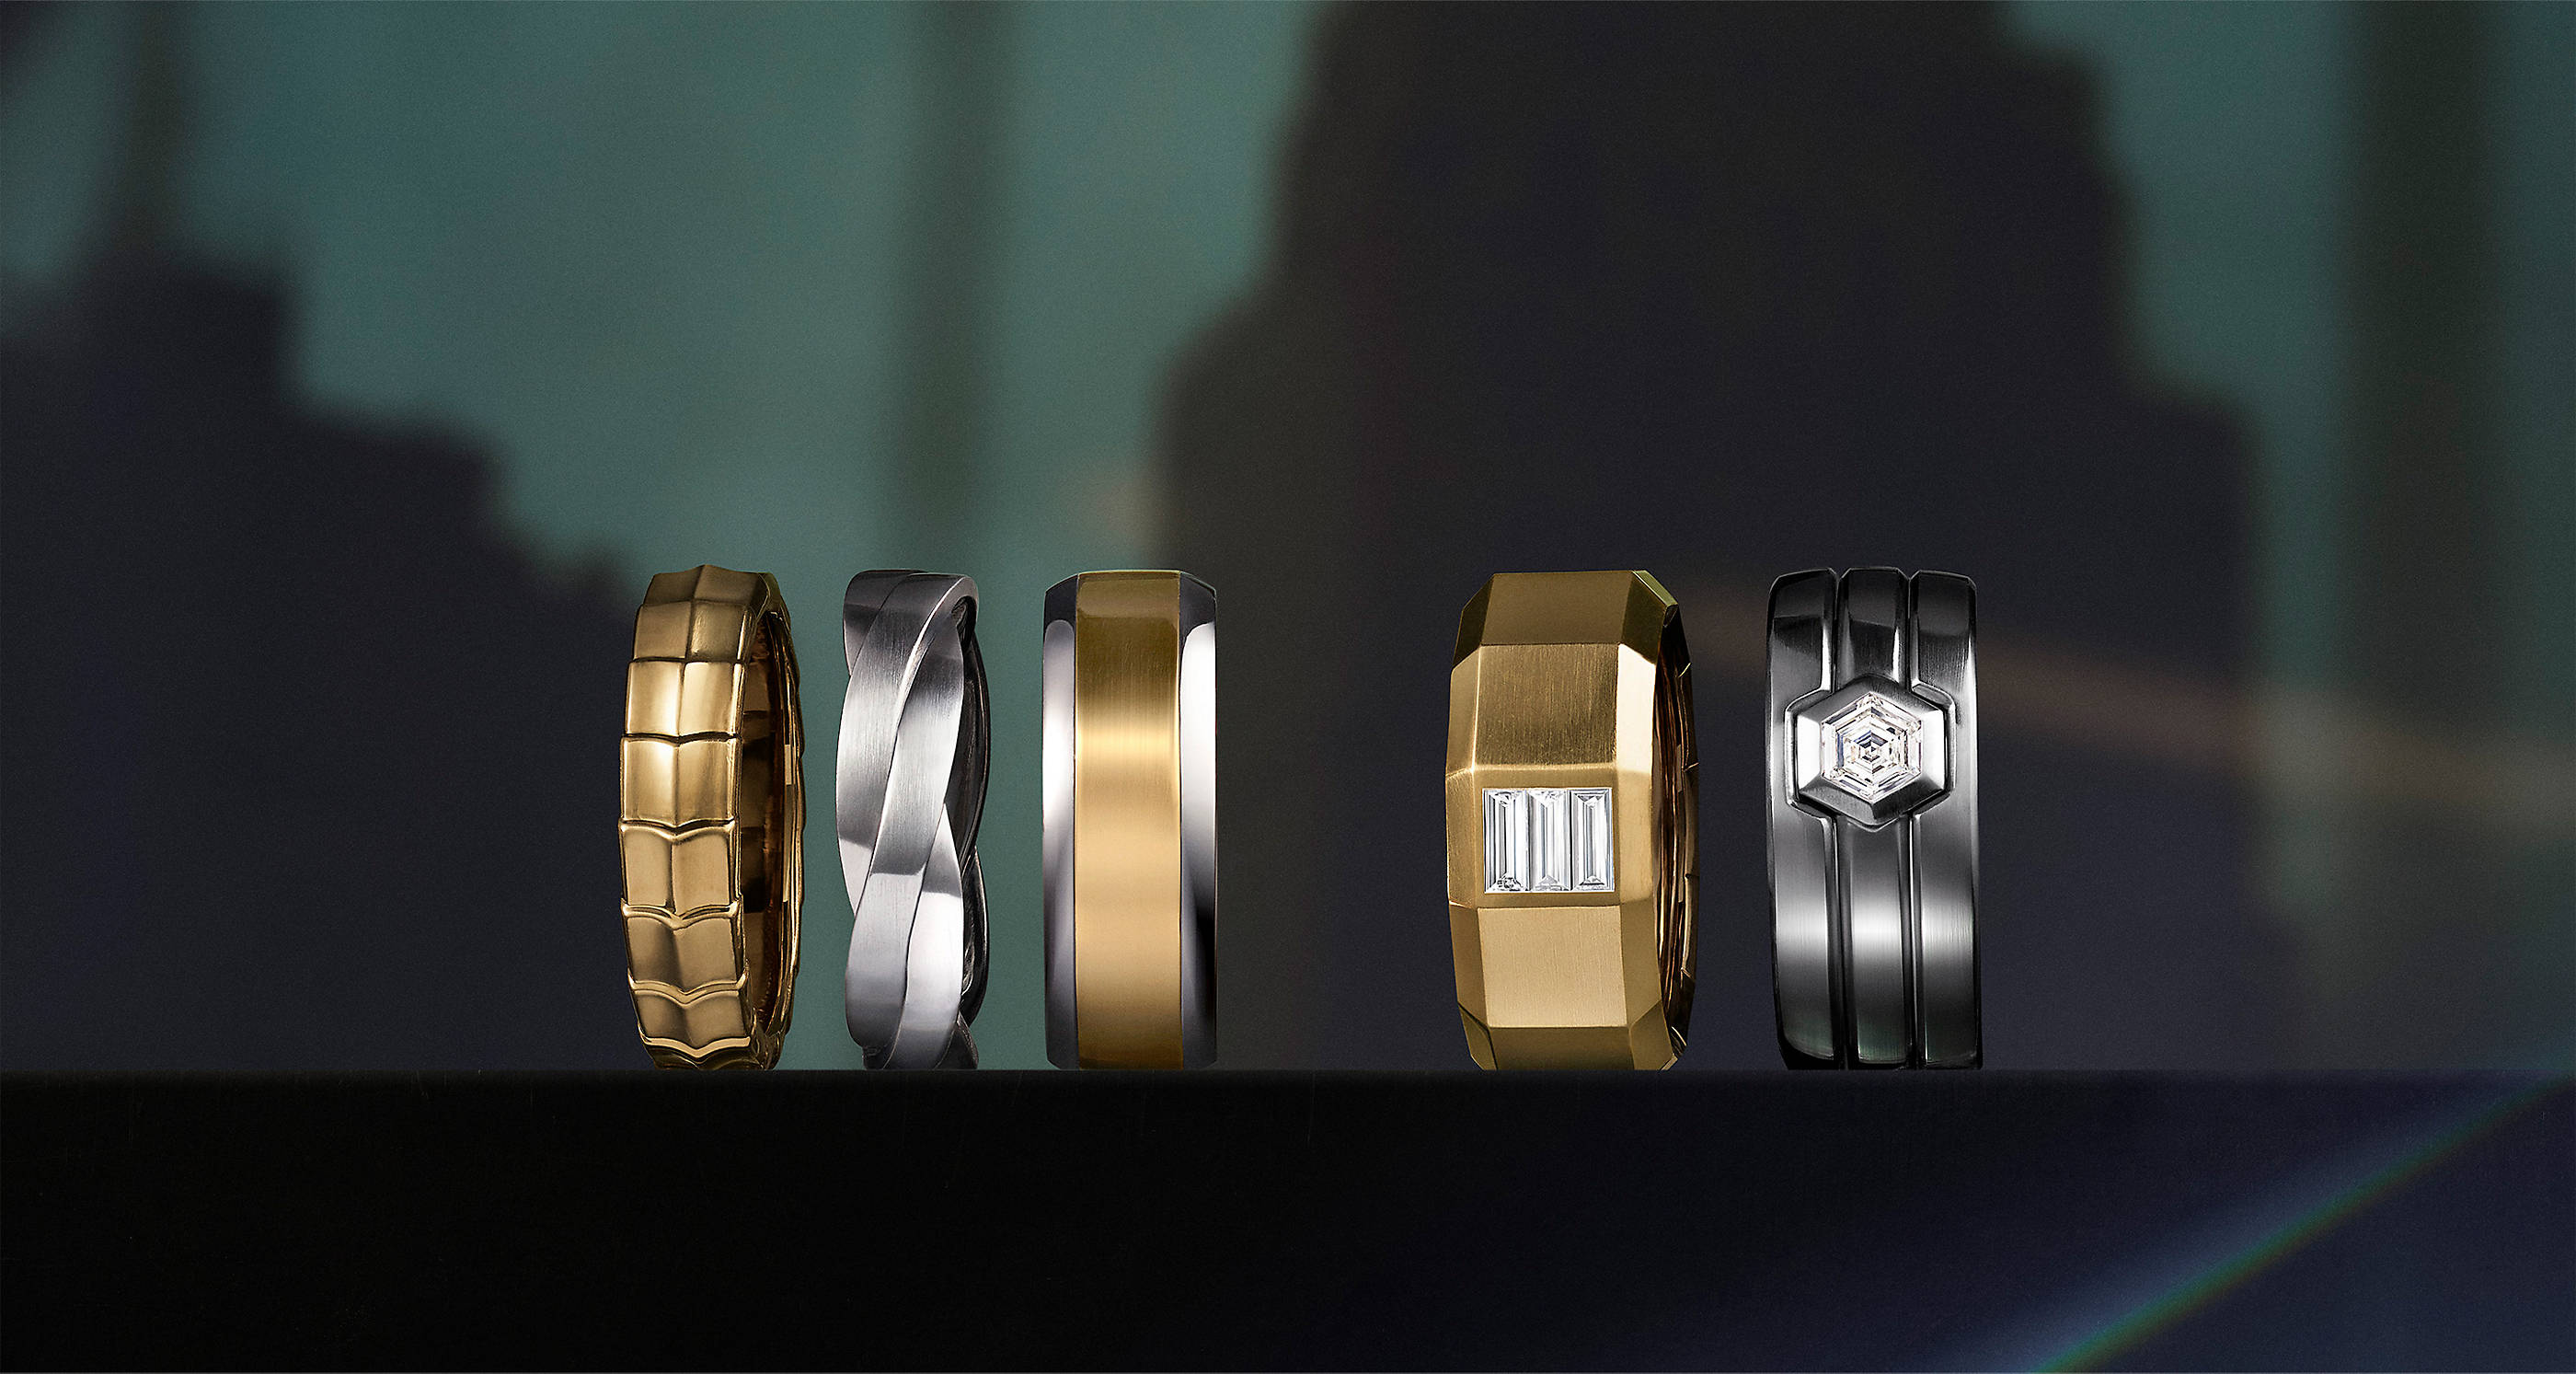 A color photo shows a horizontal row of five David Yurman men's bands standing on a dark reflective surface with a projection of a city building in the background. The bands are crafted from 18K yellow gold, sterling silver, mixed metals, or 18K yellow gold or platinum with center white diamonds.